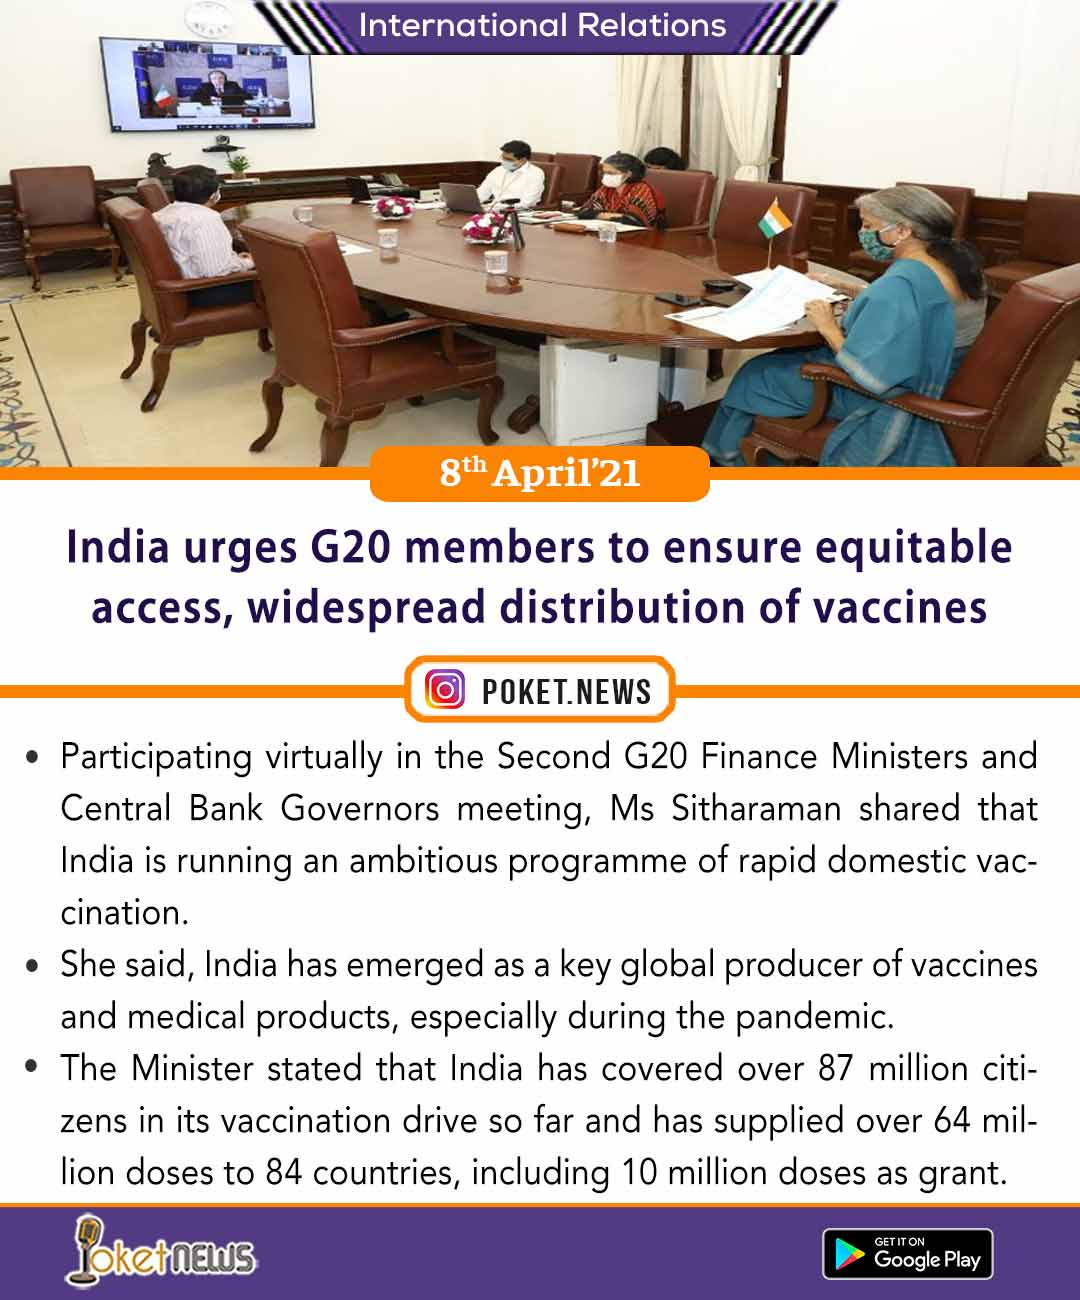 India urges G20 members to ensure equitable access, widespread distribution of vaccines